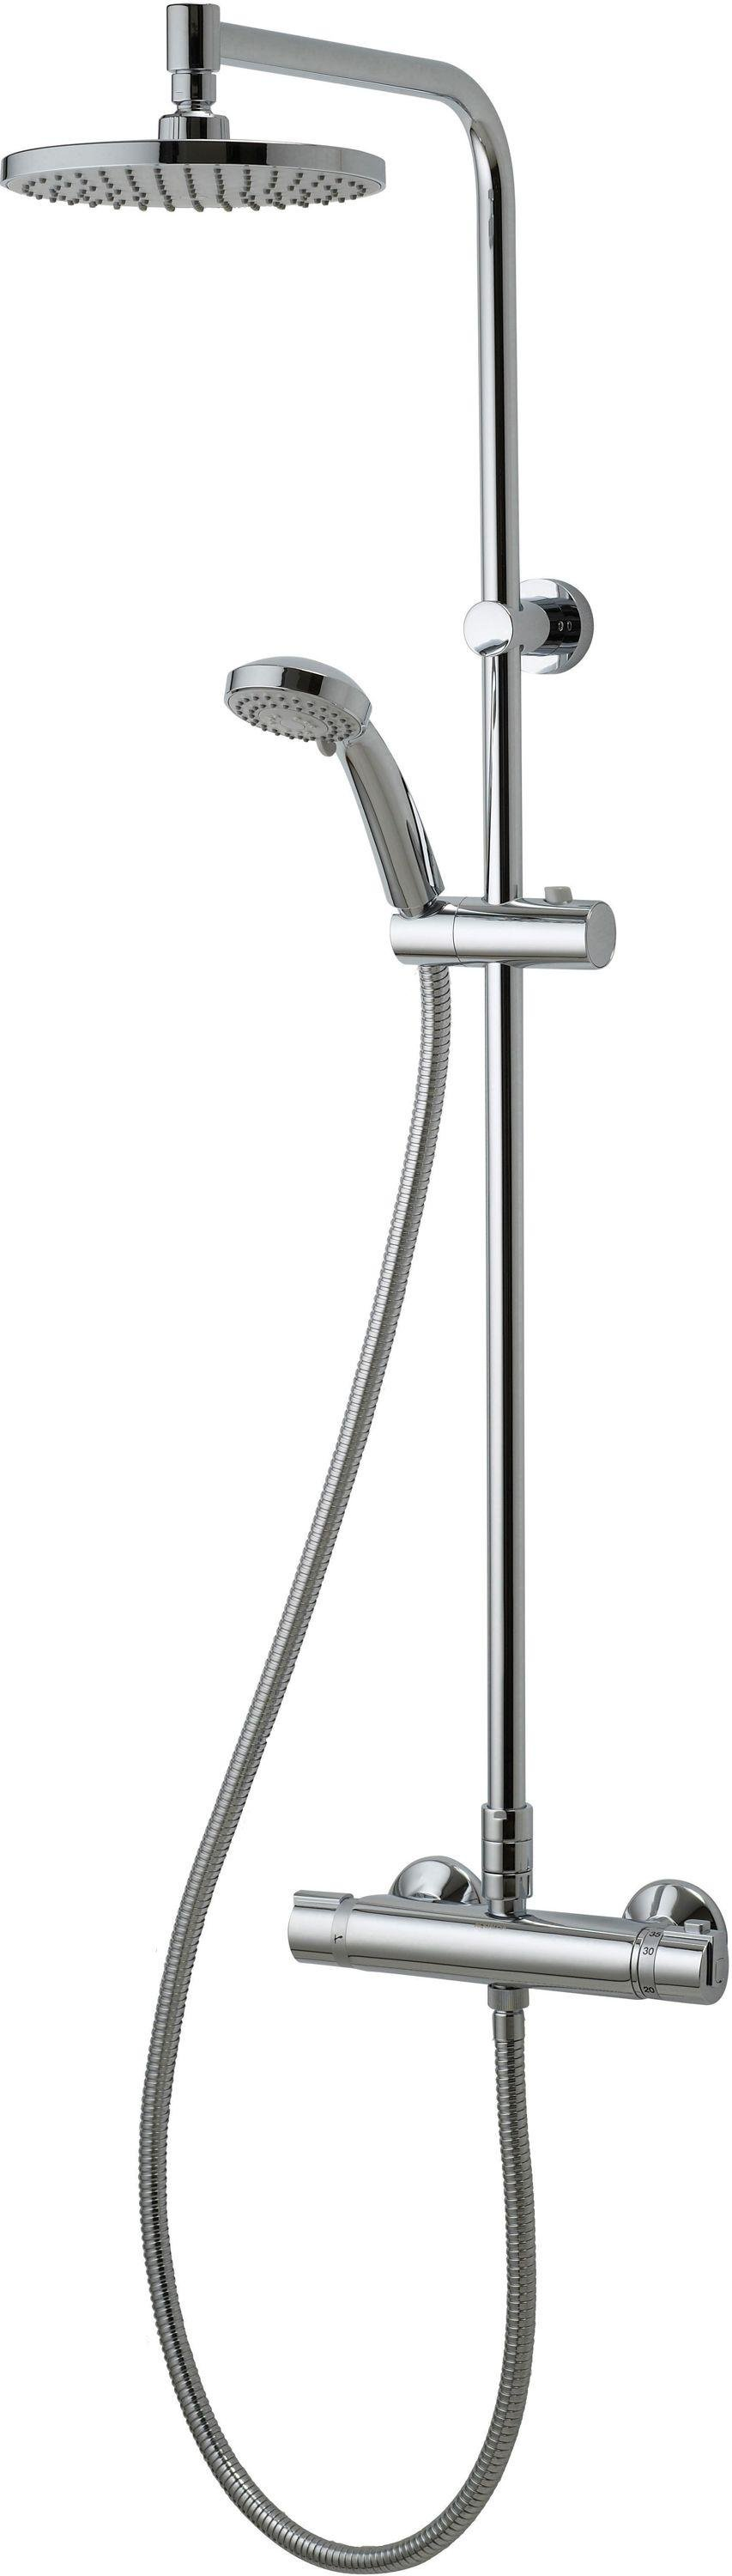 Aqualisa AQ 350 Drencher Mixer Shower.